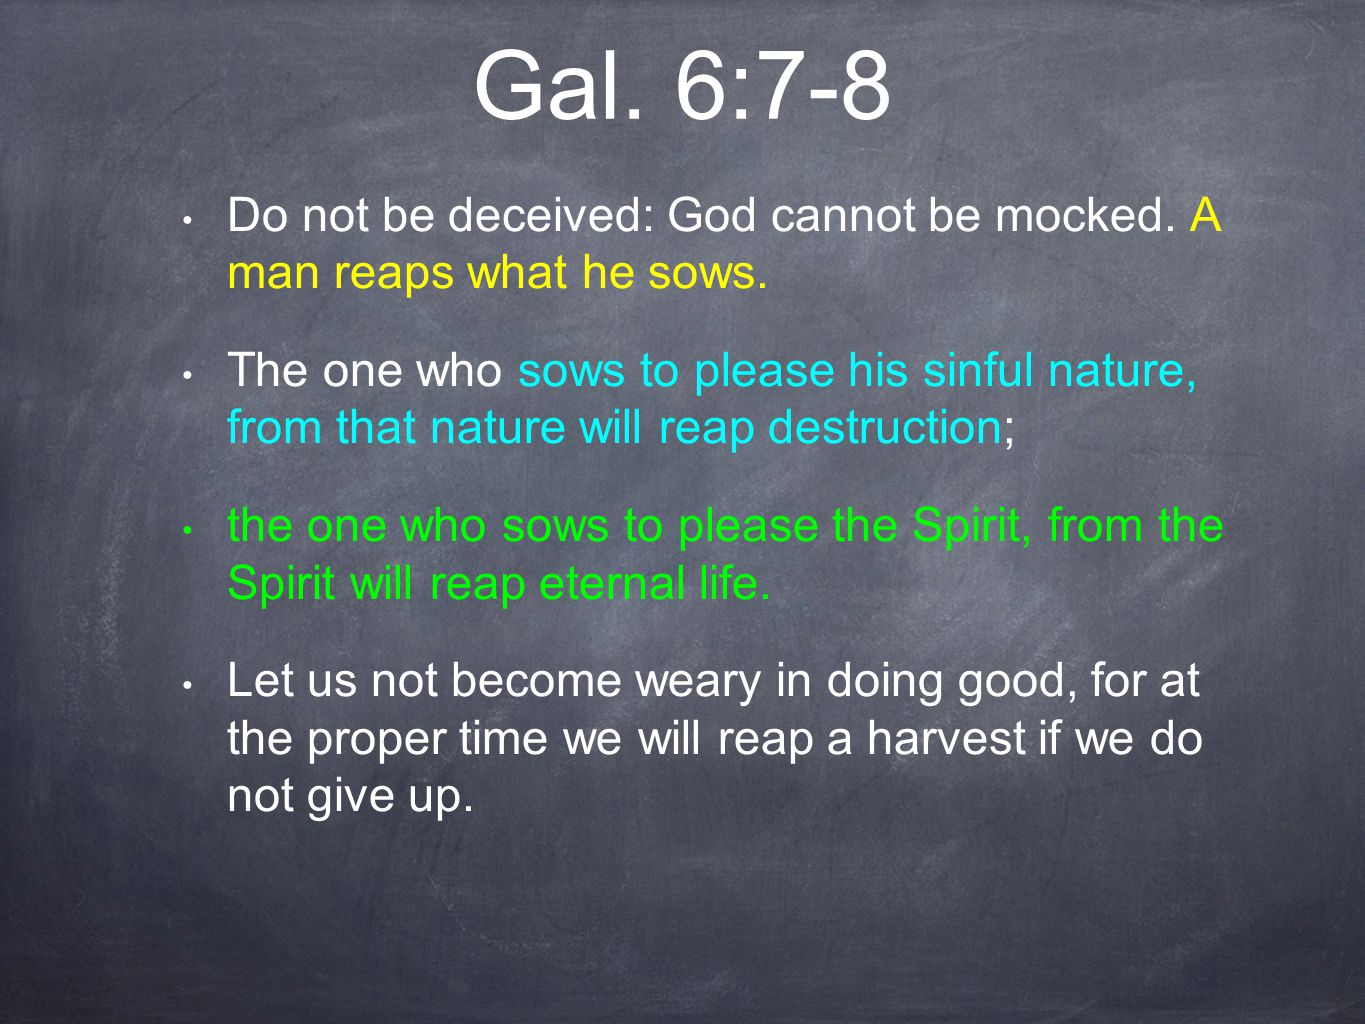 Gal. 6:7-8 Do not be deceived: God cannot be mocked.